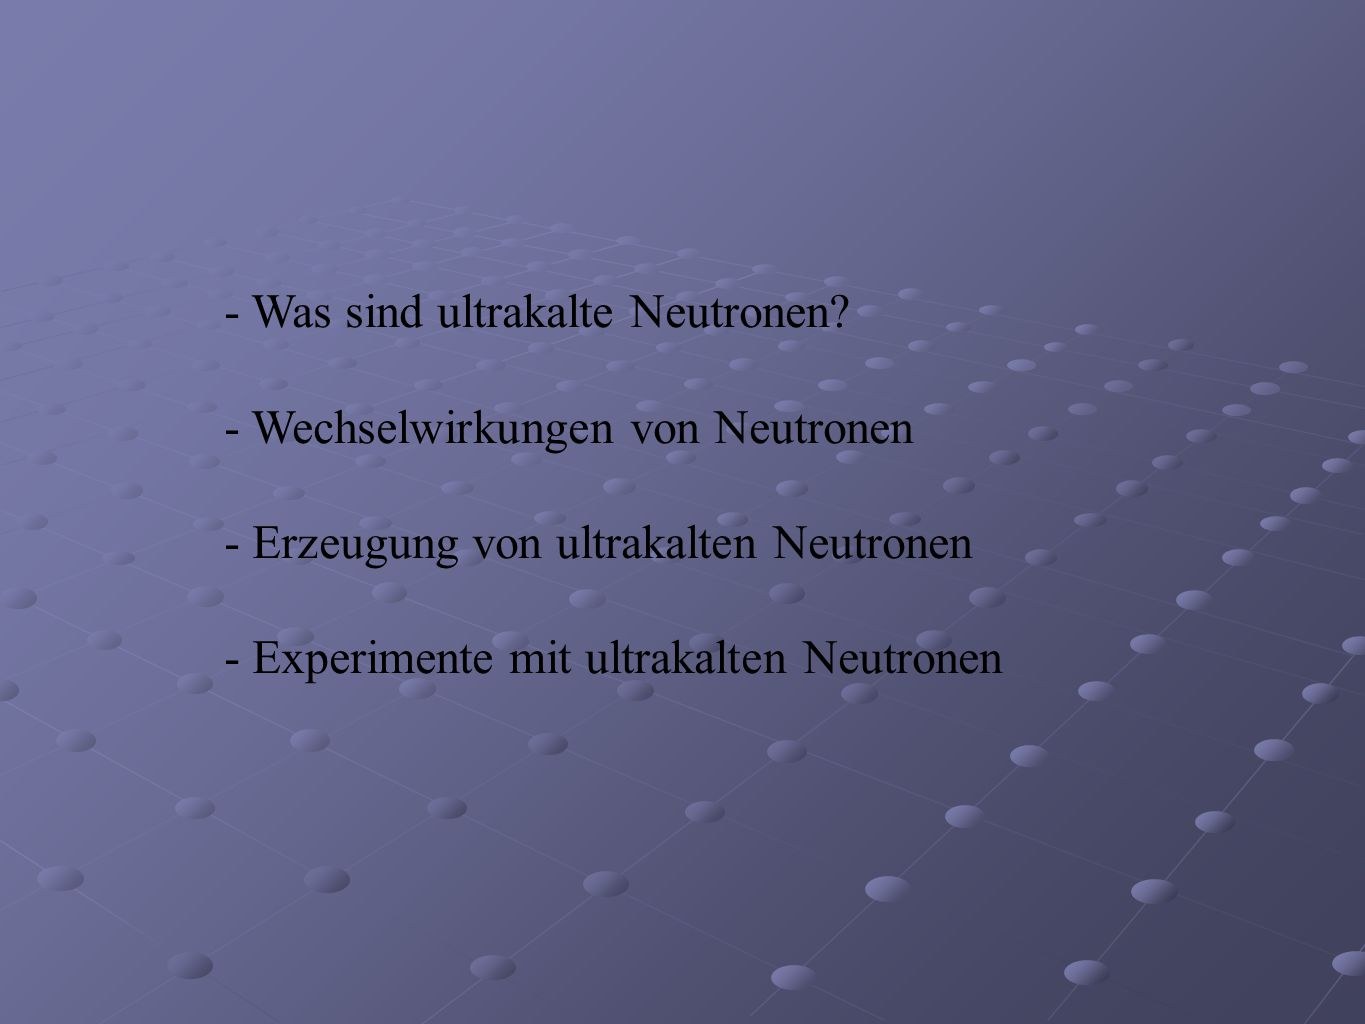 - Was sind ultrakalte Neutronen